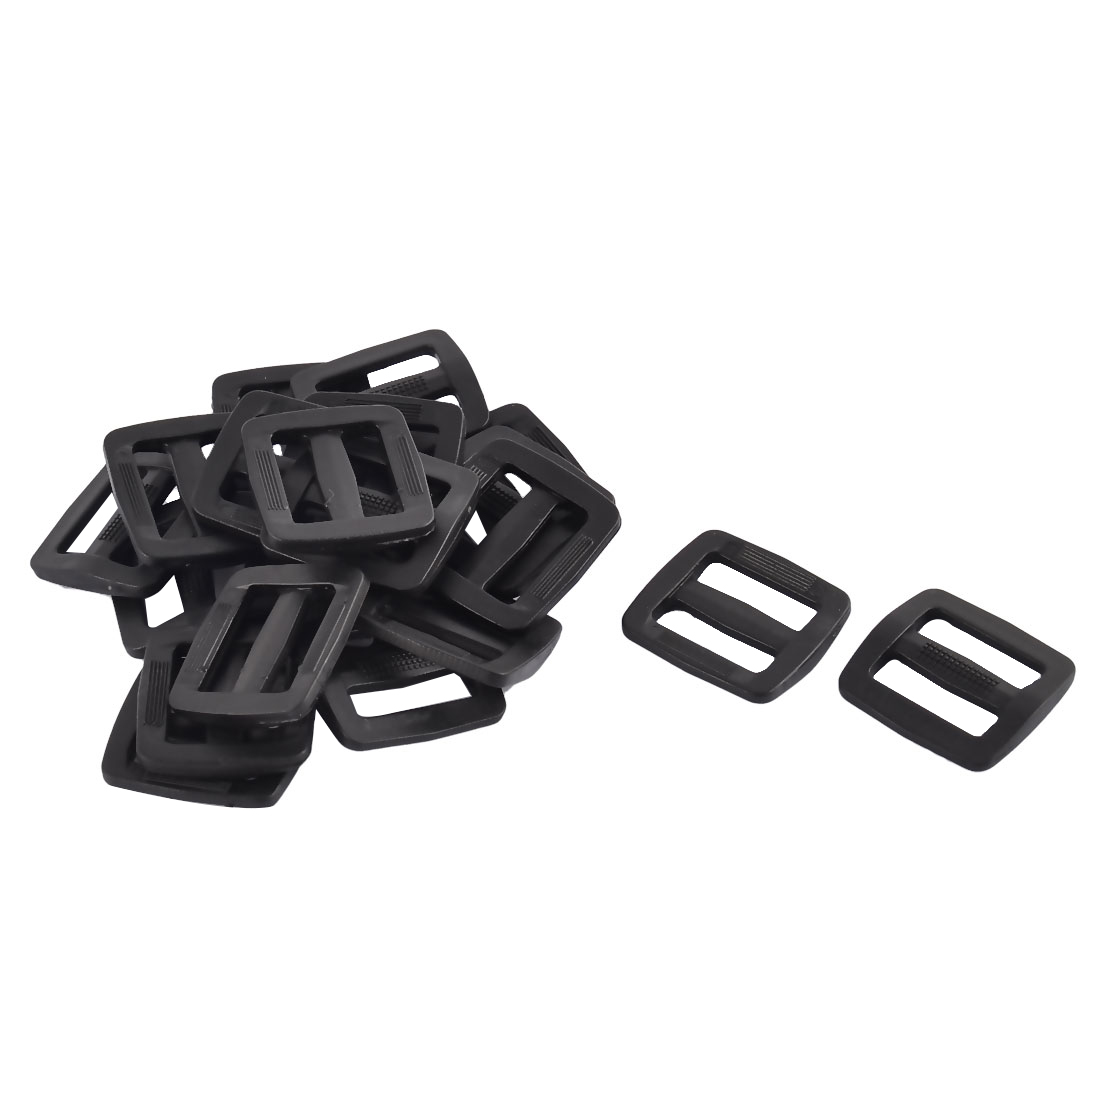 Luggage Bag Hard Plastic Rectangle Removable Buckles 2.8cm Black 20pcs